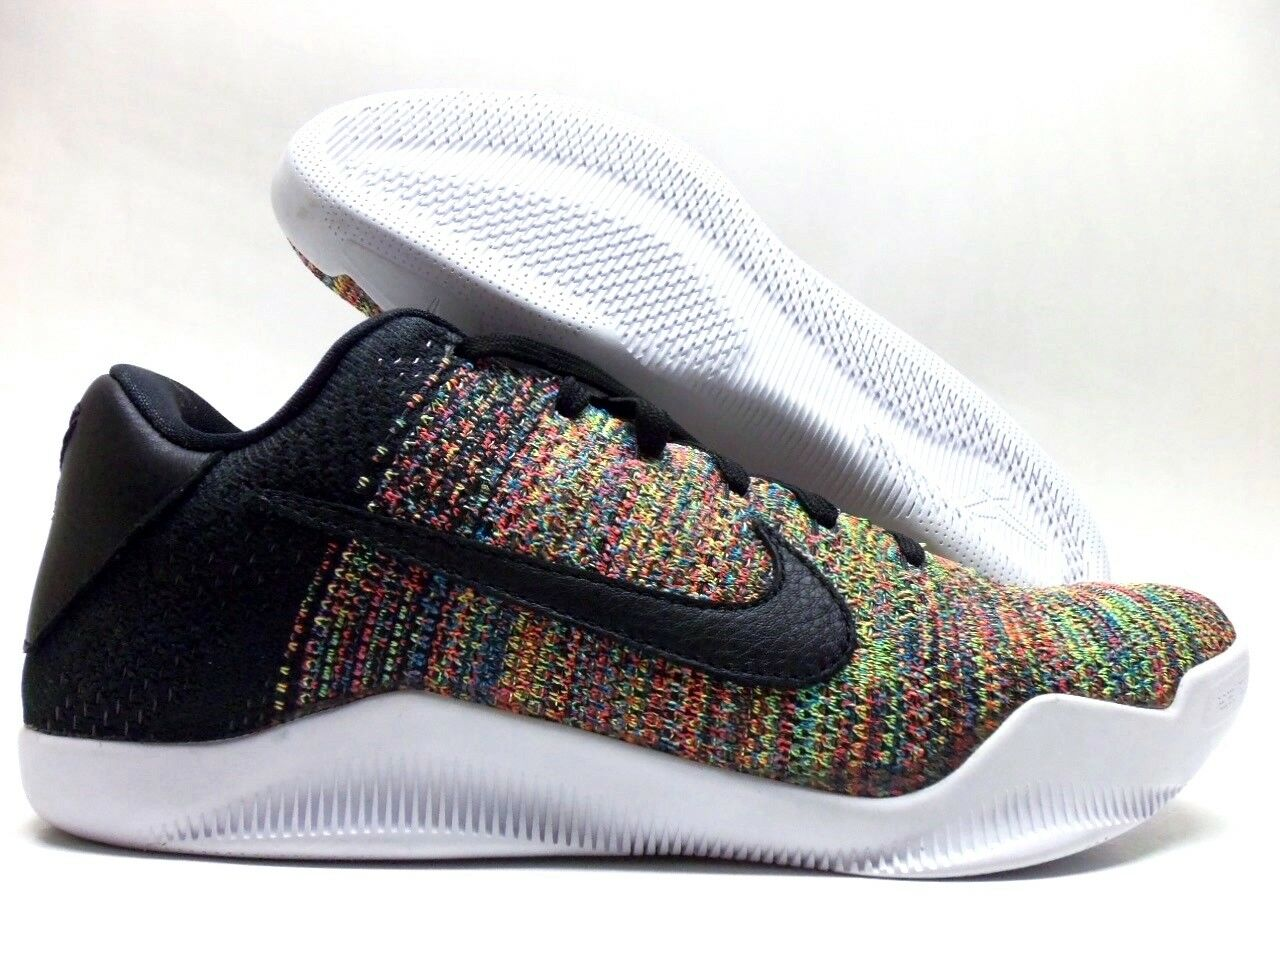 finest selection 4dbe5 2833a ... coupon for nike kobe xi 11 flyknit faible id multi color noir flyknit  élite hommes 8